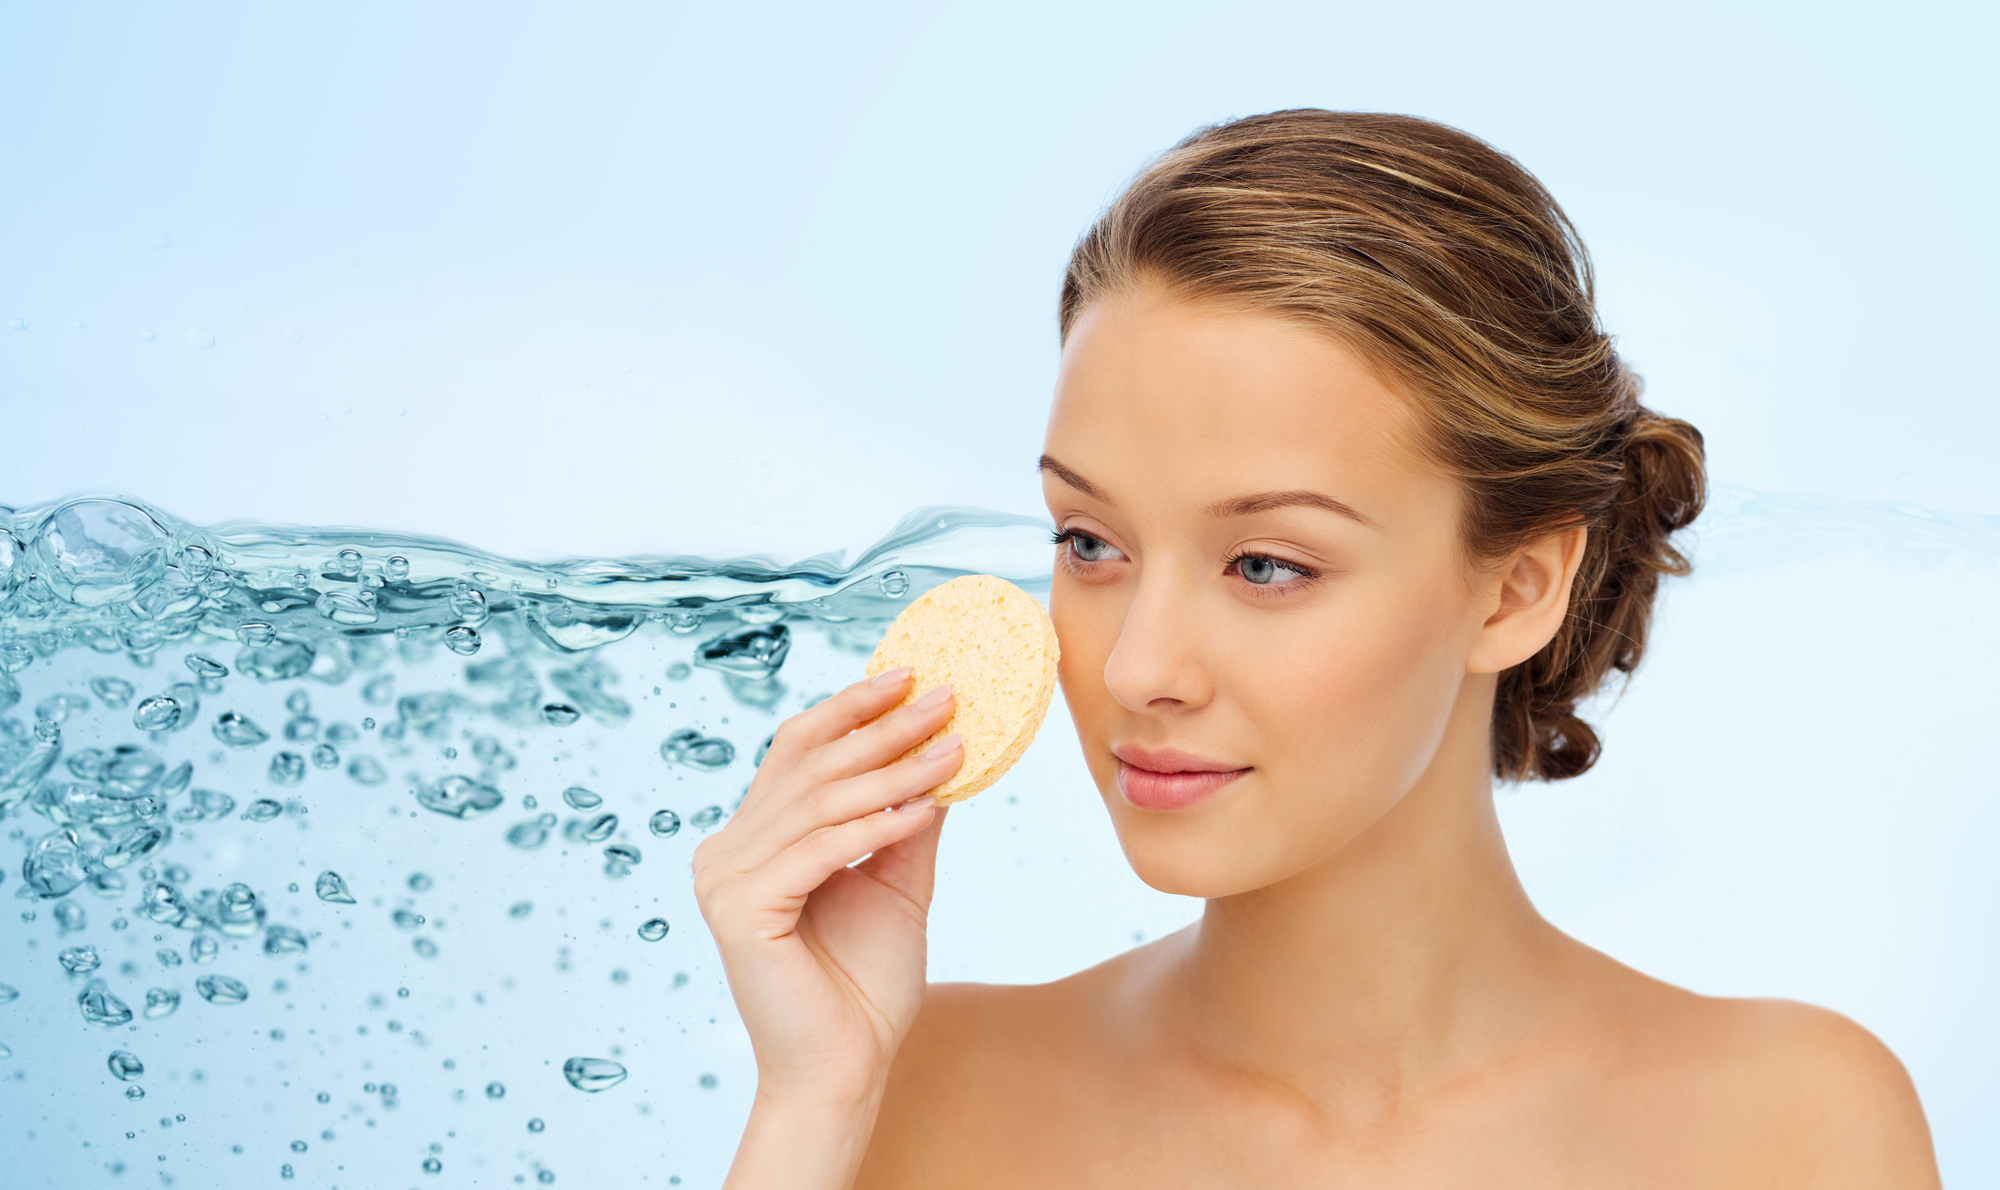 beauty, people, moisturizing, skin care and skincare concept - young woman cleaning face with exfoliating sponge over water splash background